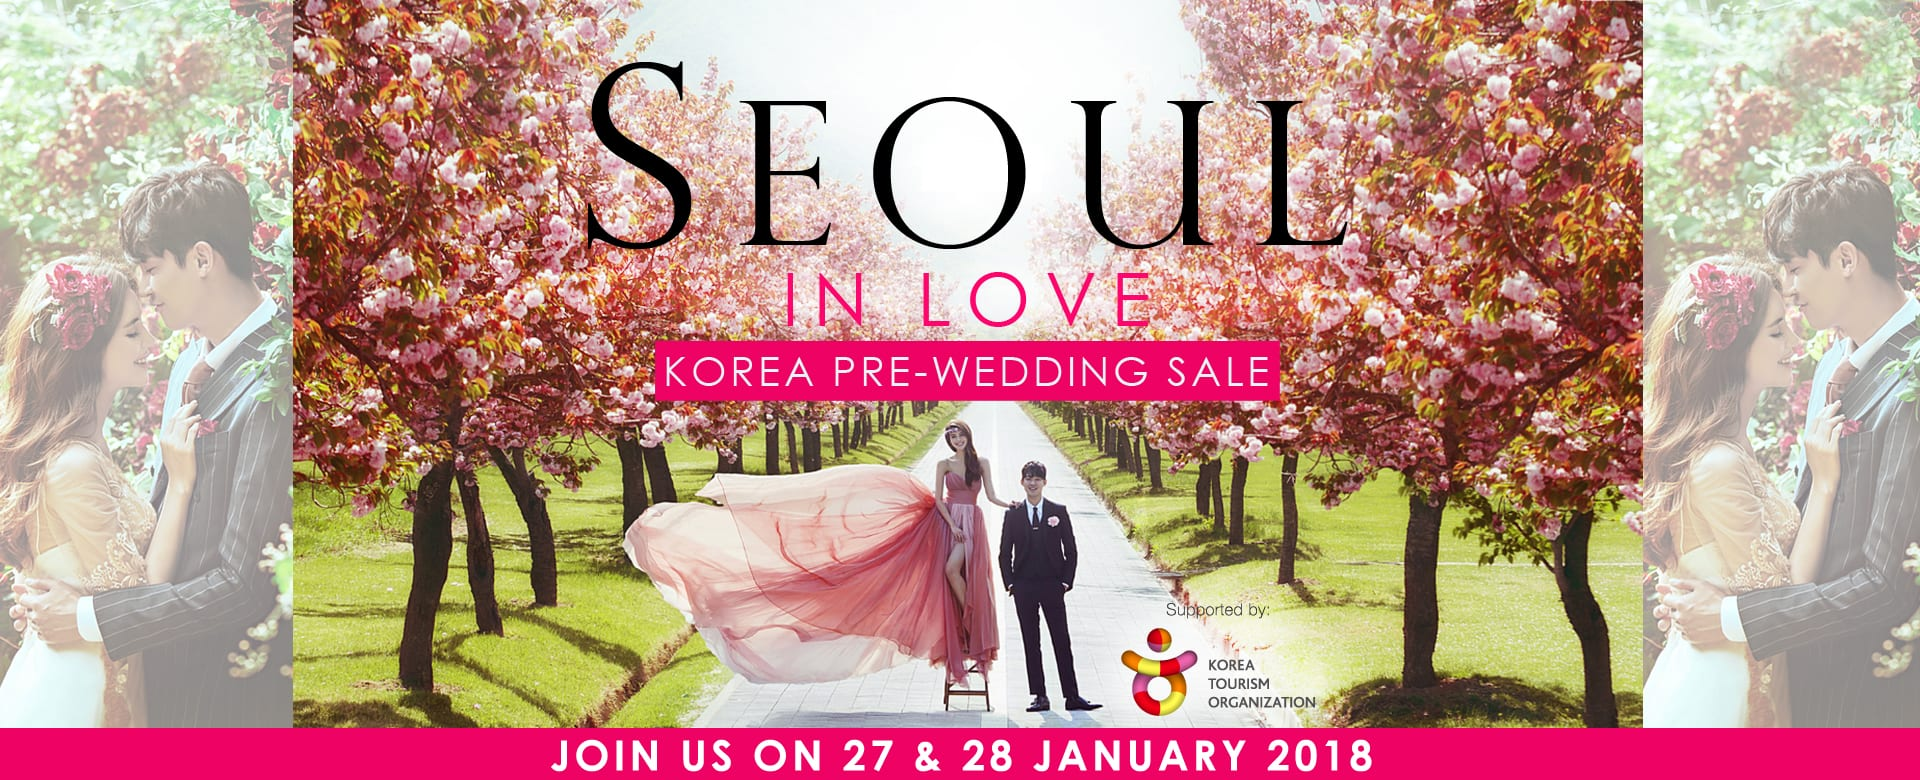 """Seoul in Love"" Korea Pre-wedding Sale"